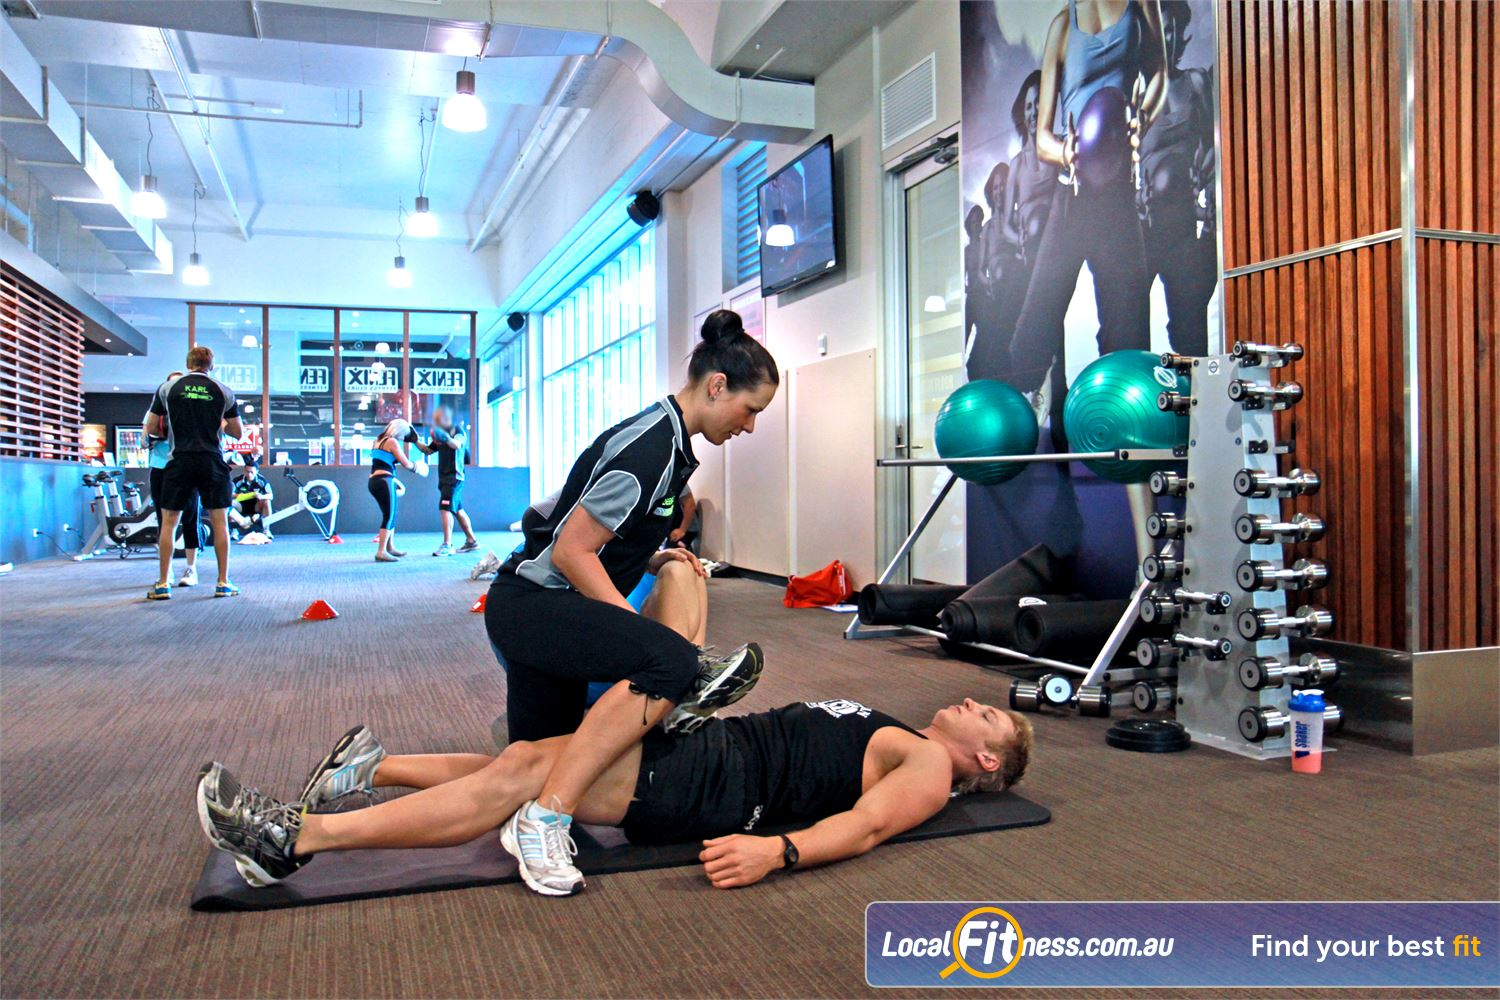 Goodlife Health Clubs Robina Our dedicated ab and stretching zone.